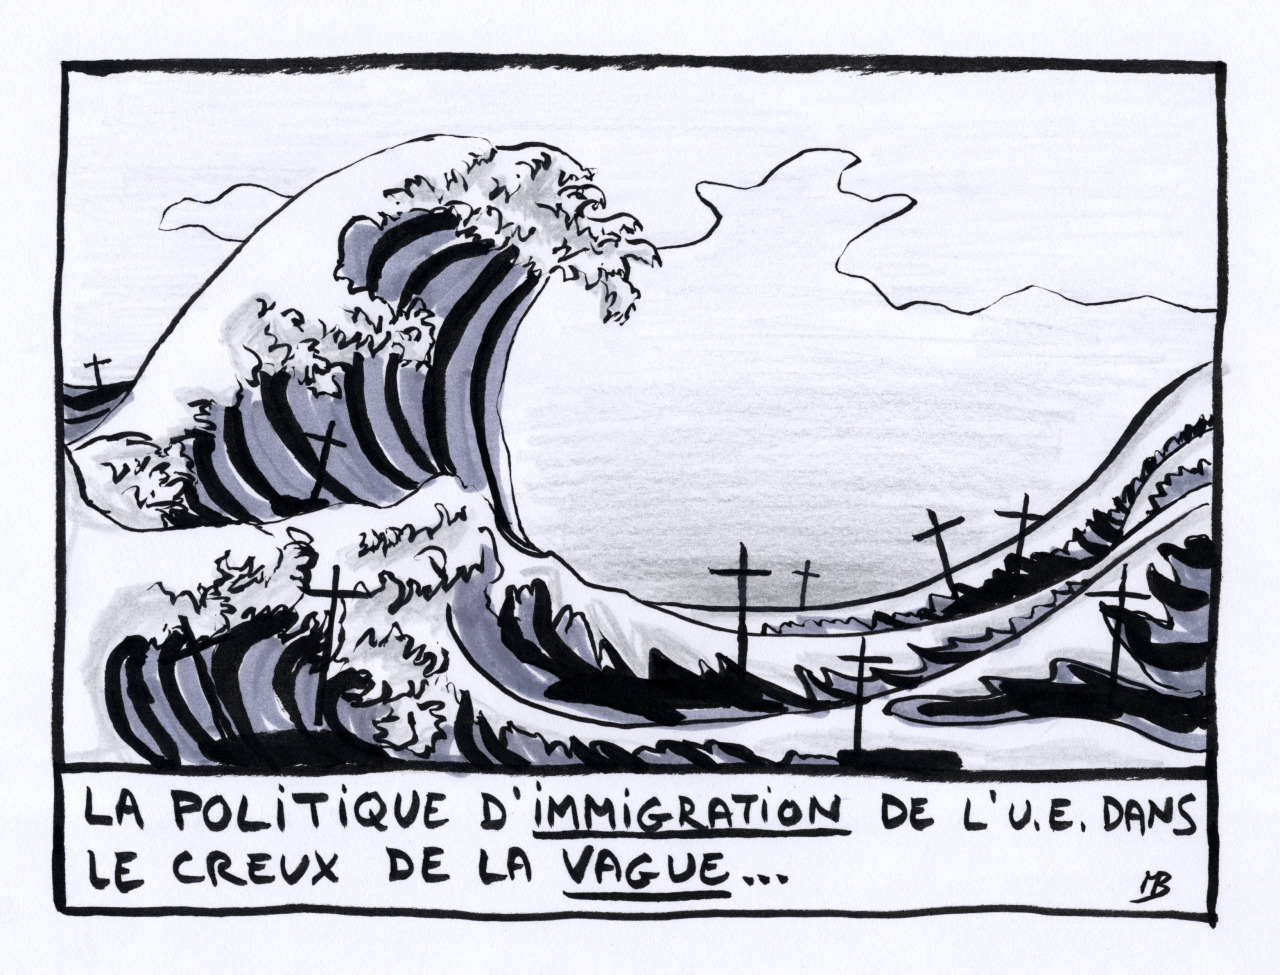 immigration creux vague dessin